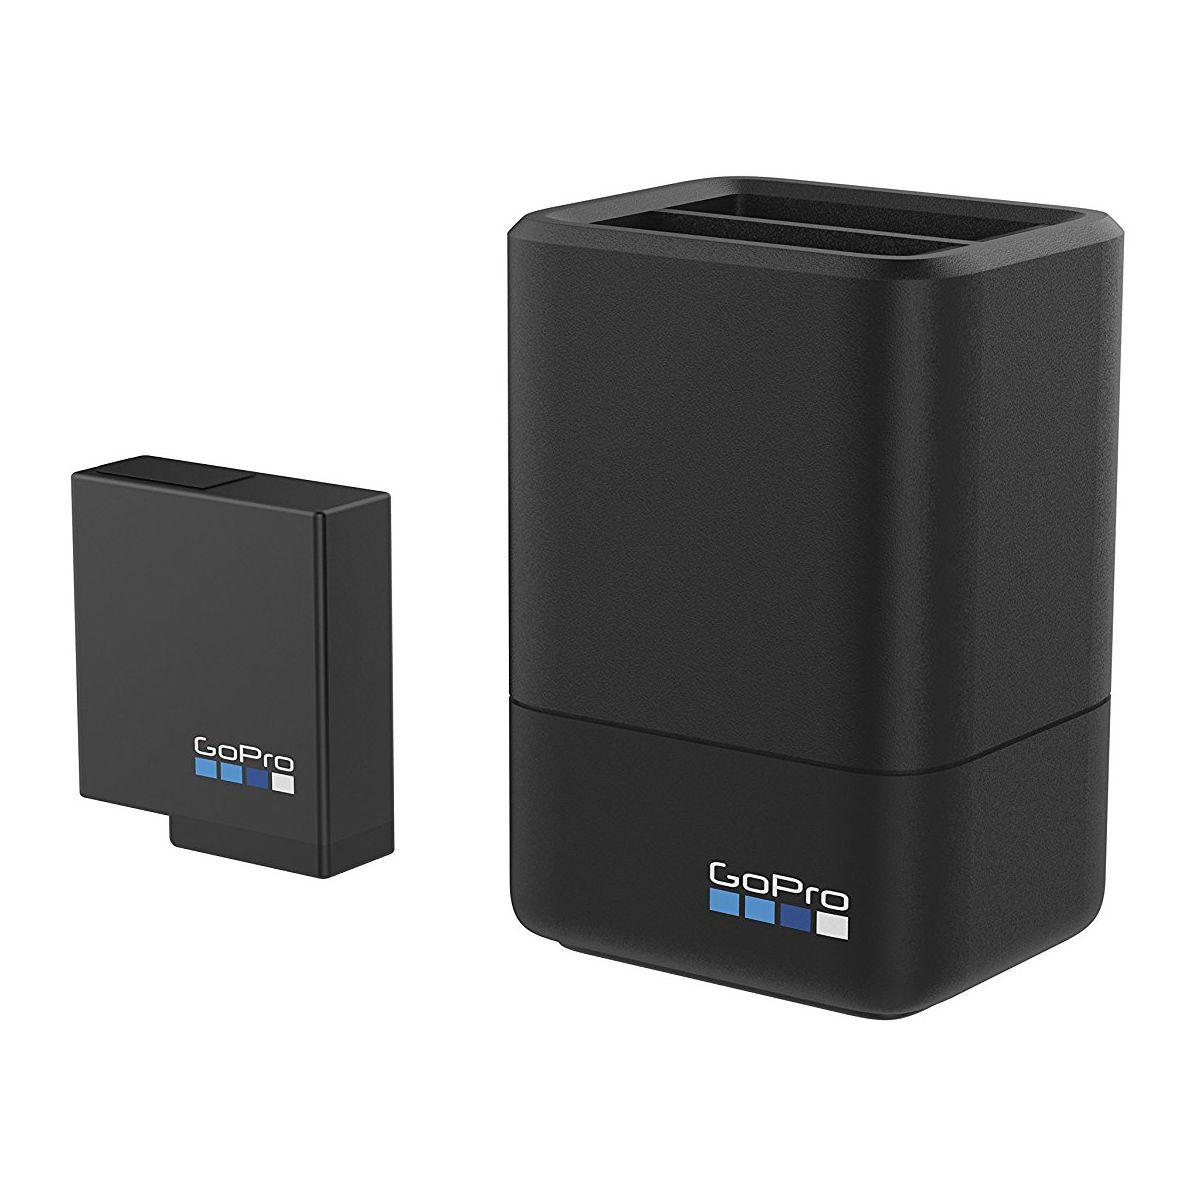 Chargeur gopro double slot + batterie (hero5 black) (photo)